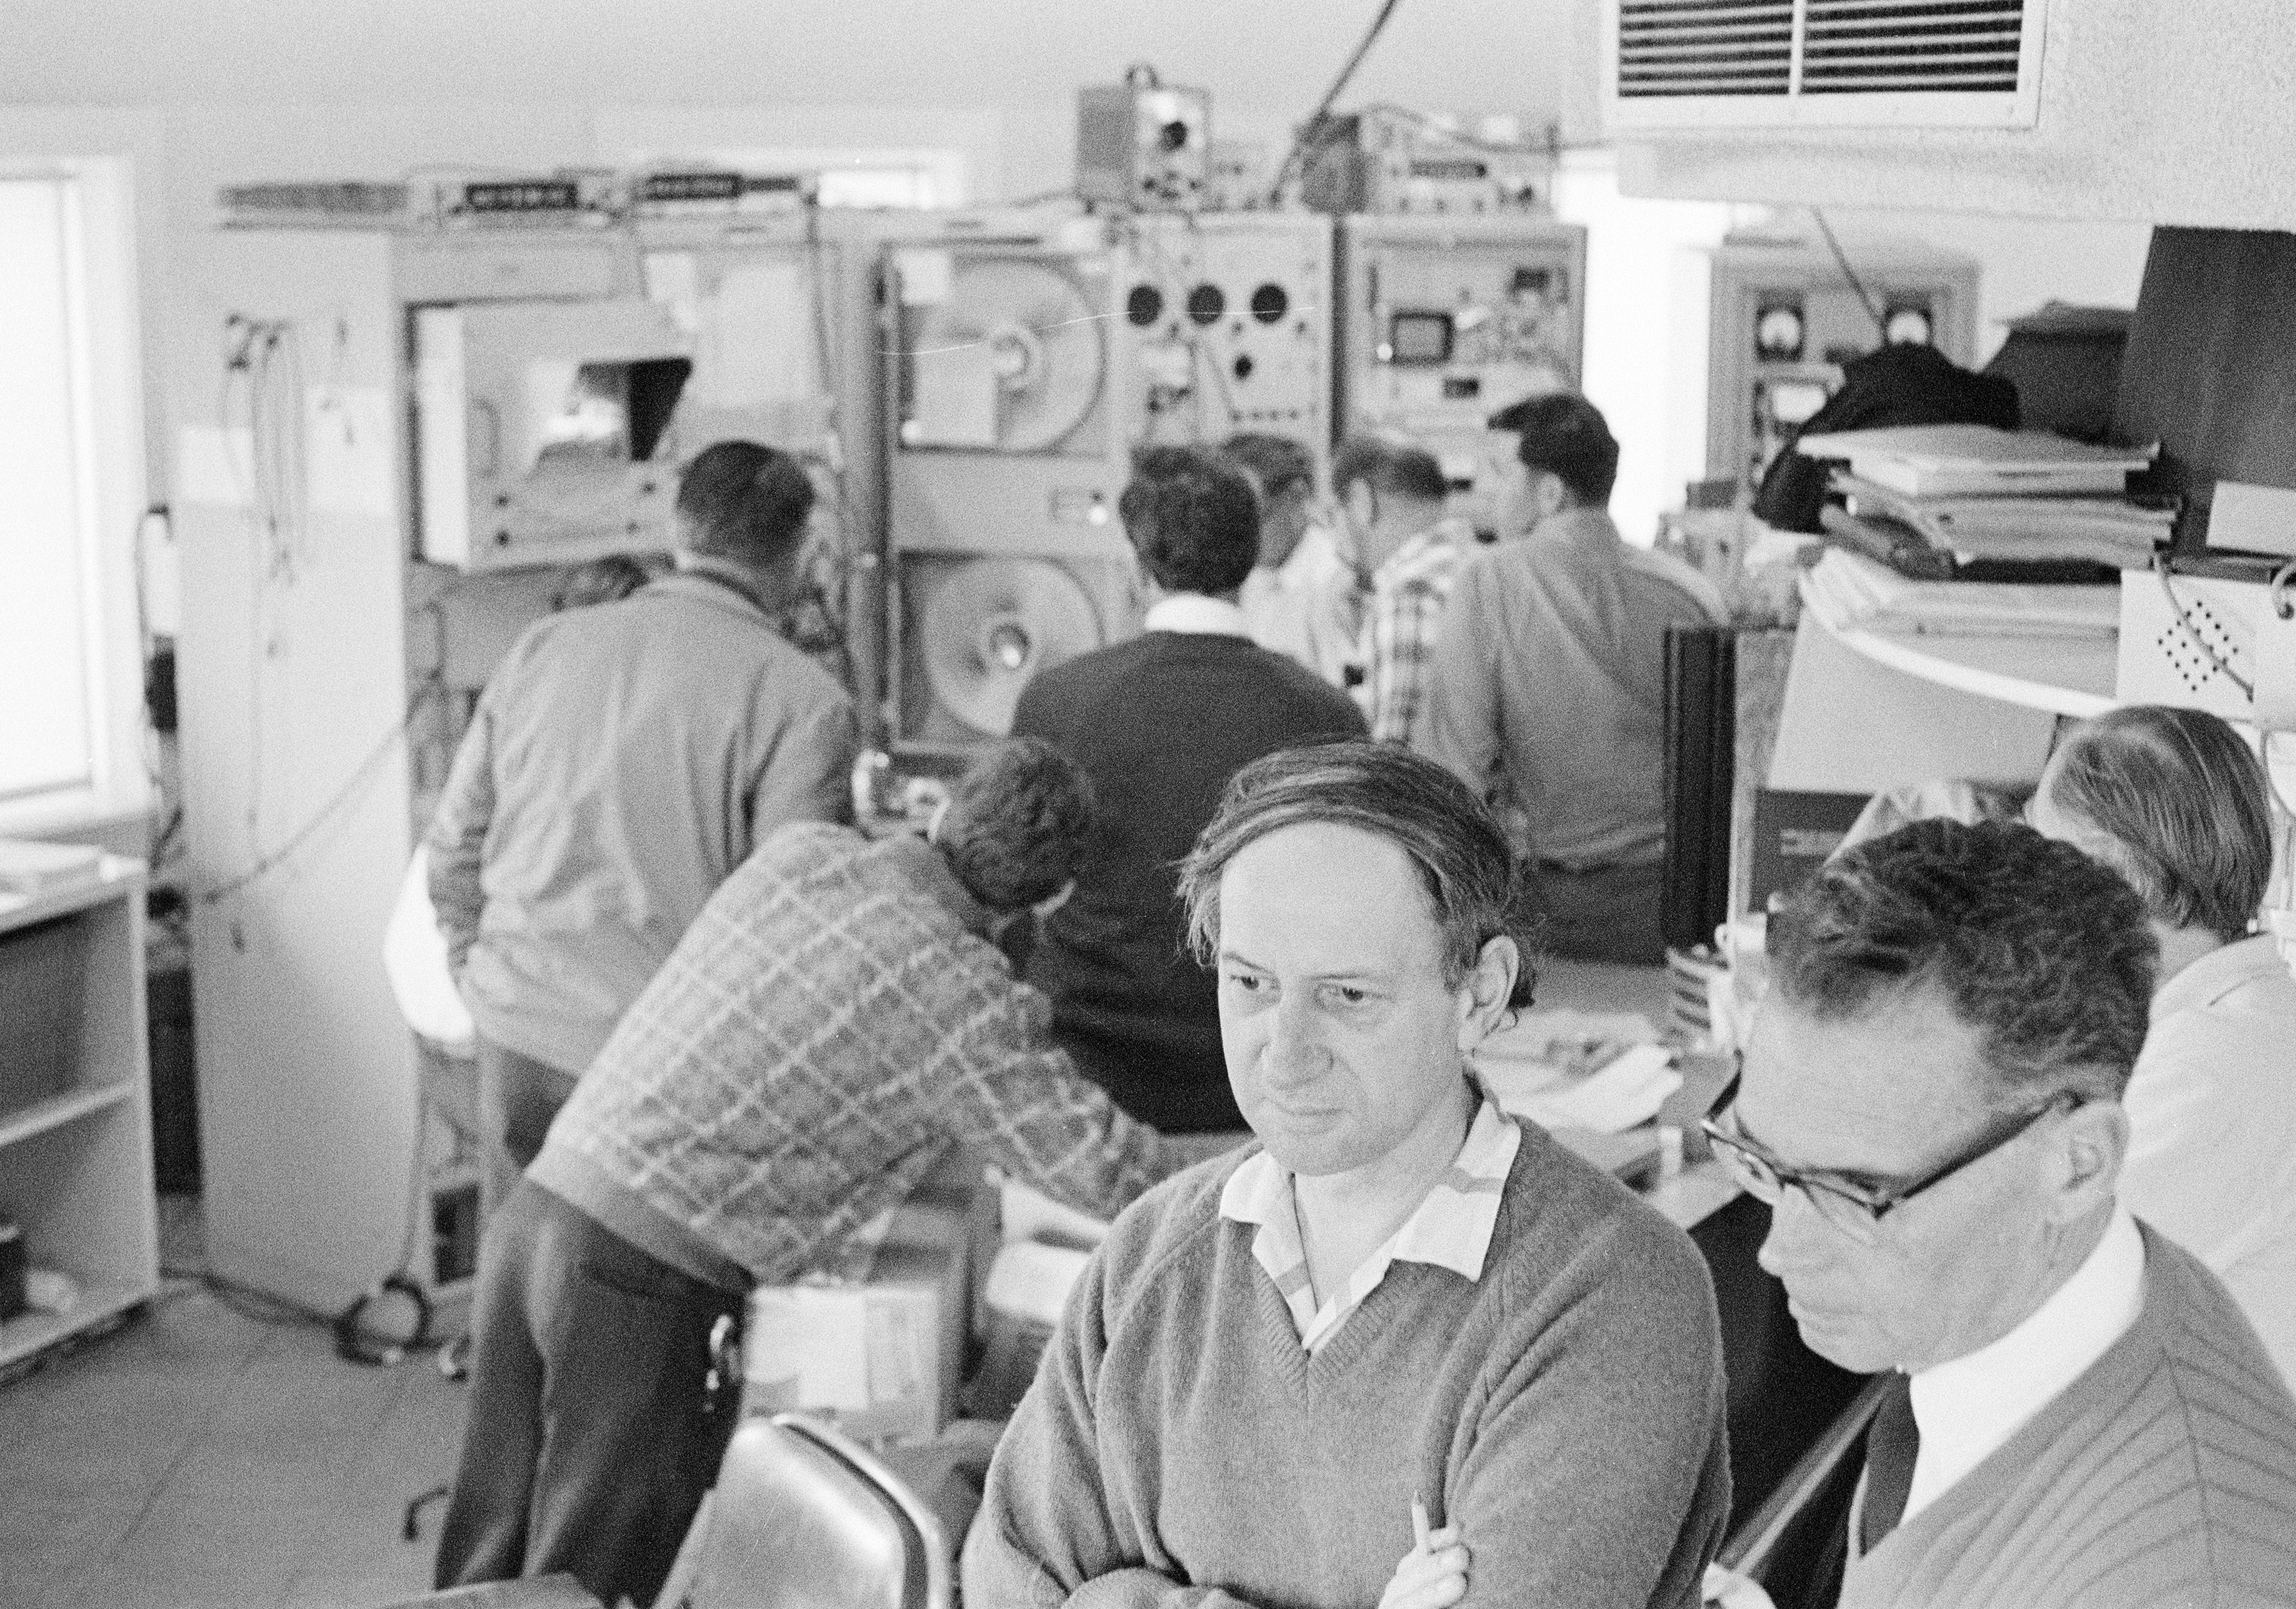 Several men standing around old, large computer gear. Two men in the foreground are looking just off the camera view. One man has his arms crossed. Image is black and white.